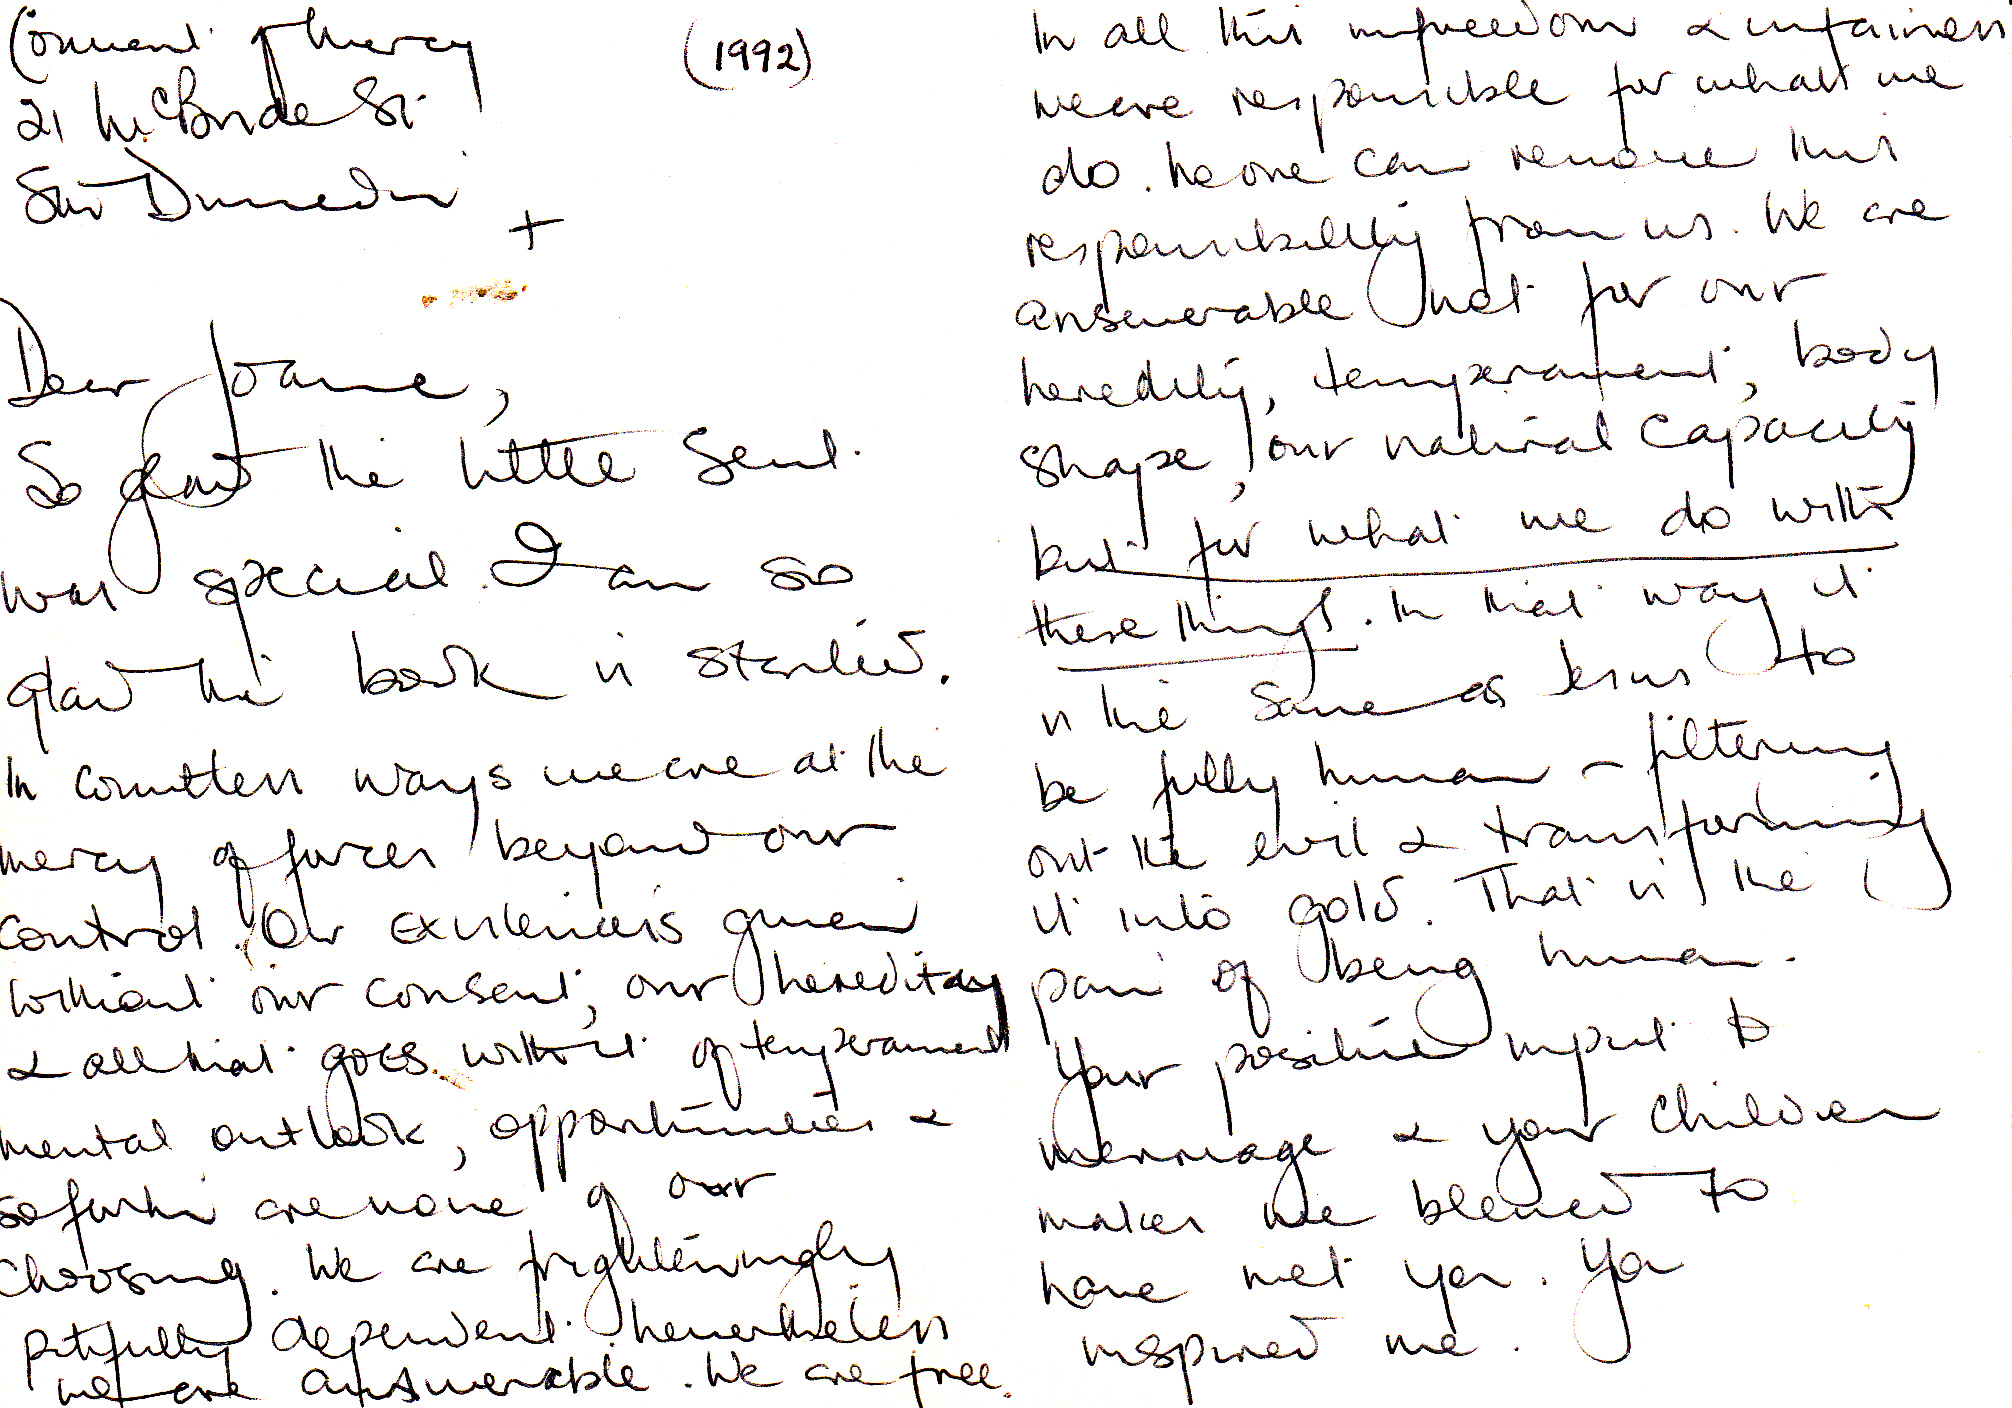 letter from Sister Joanna 2